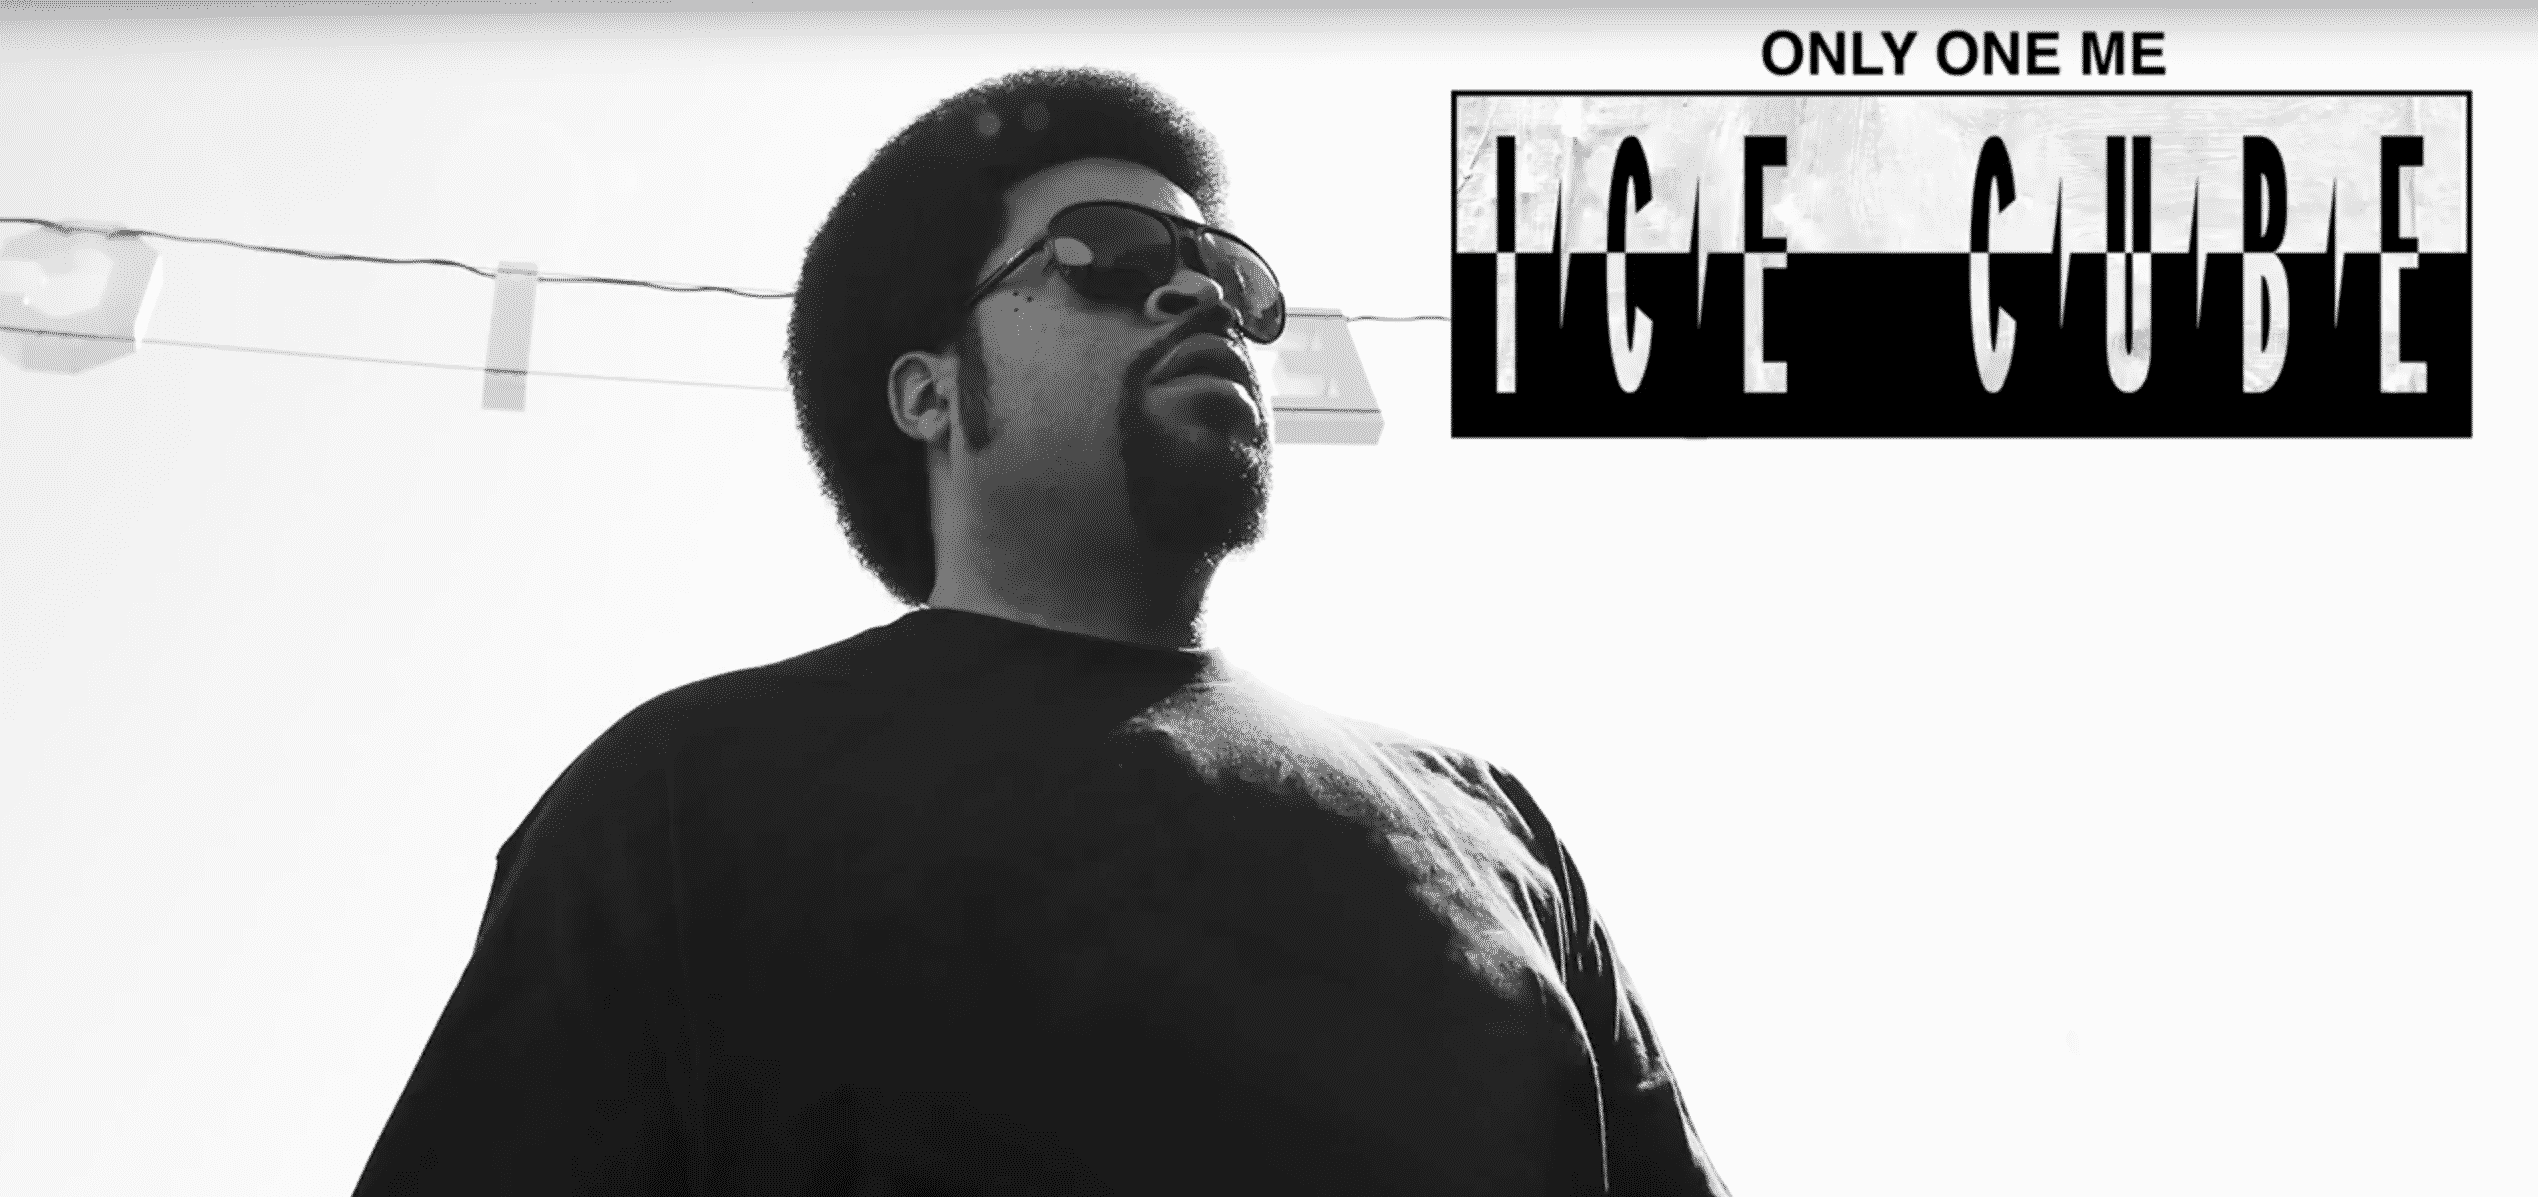 image cover son Only One Me de Ice Cube